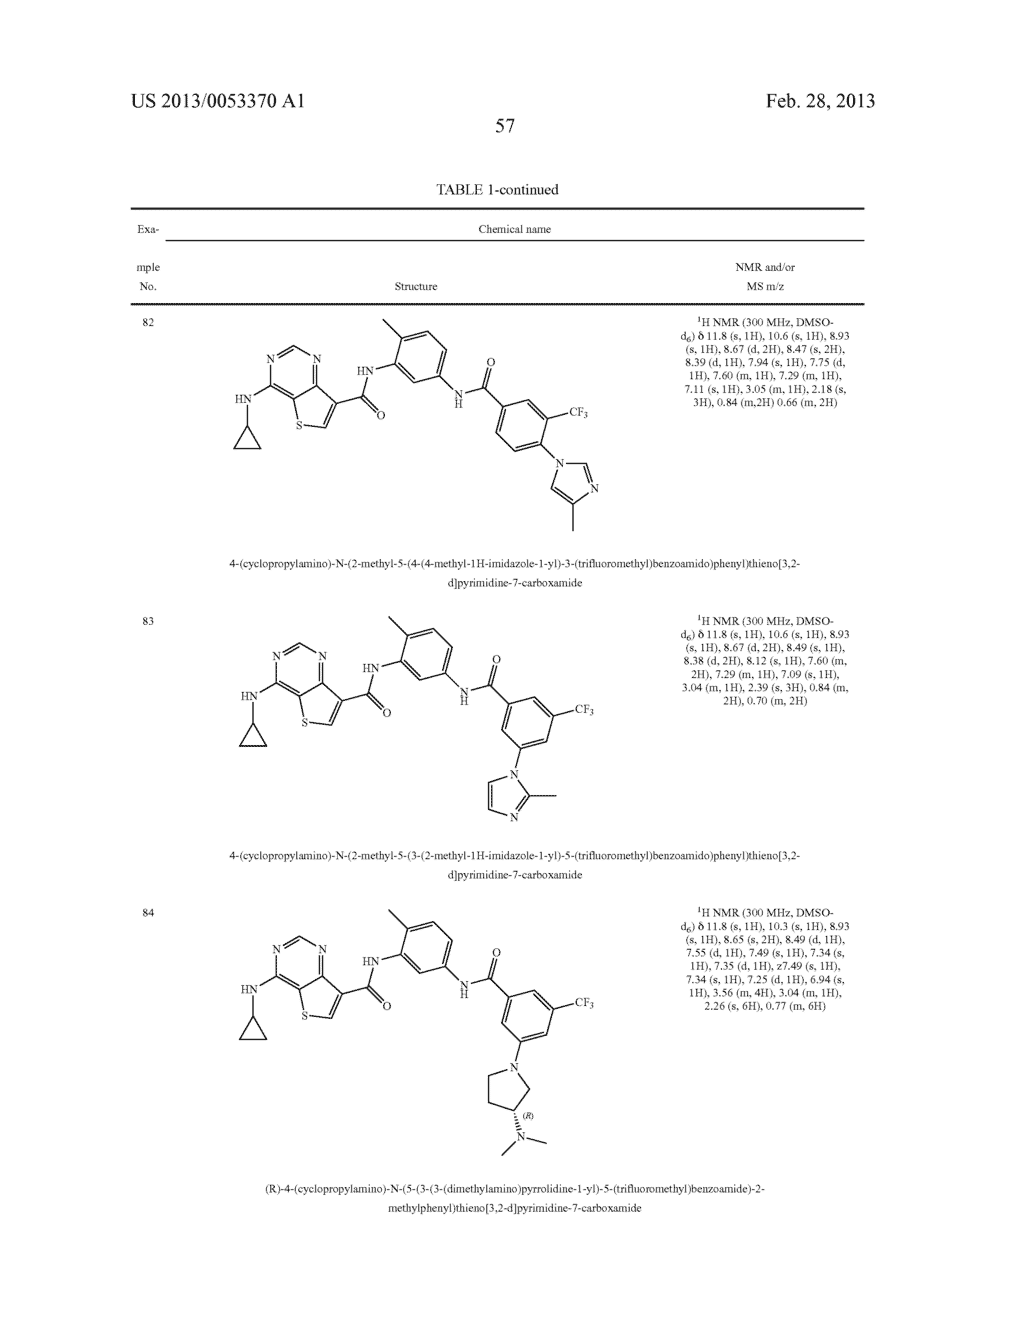 THIENO[3,2-d]PYRIMIDINE DERIVATIVES HAVING INHIBITORY ACTIVITY ON PROTEIN     KINASES - diagram, schematic, and image 58